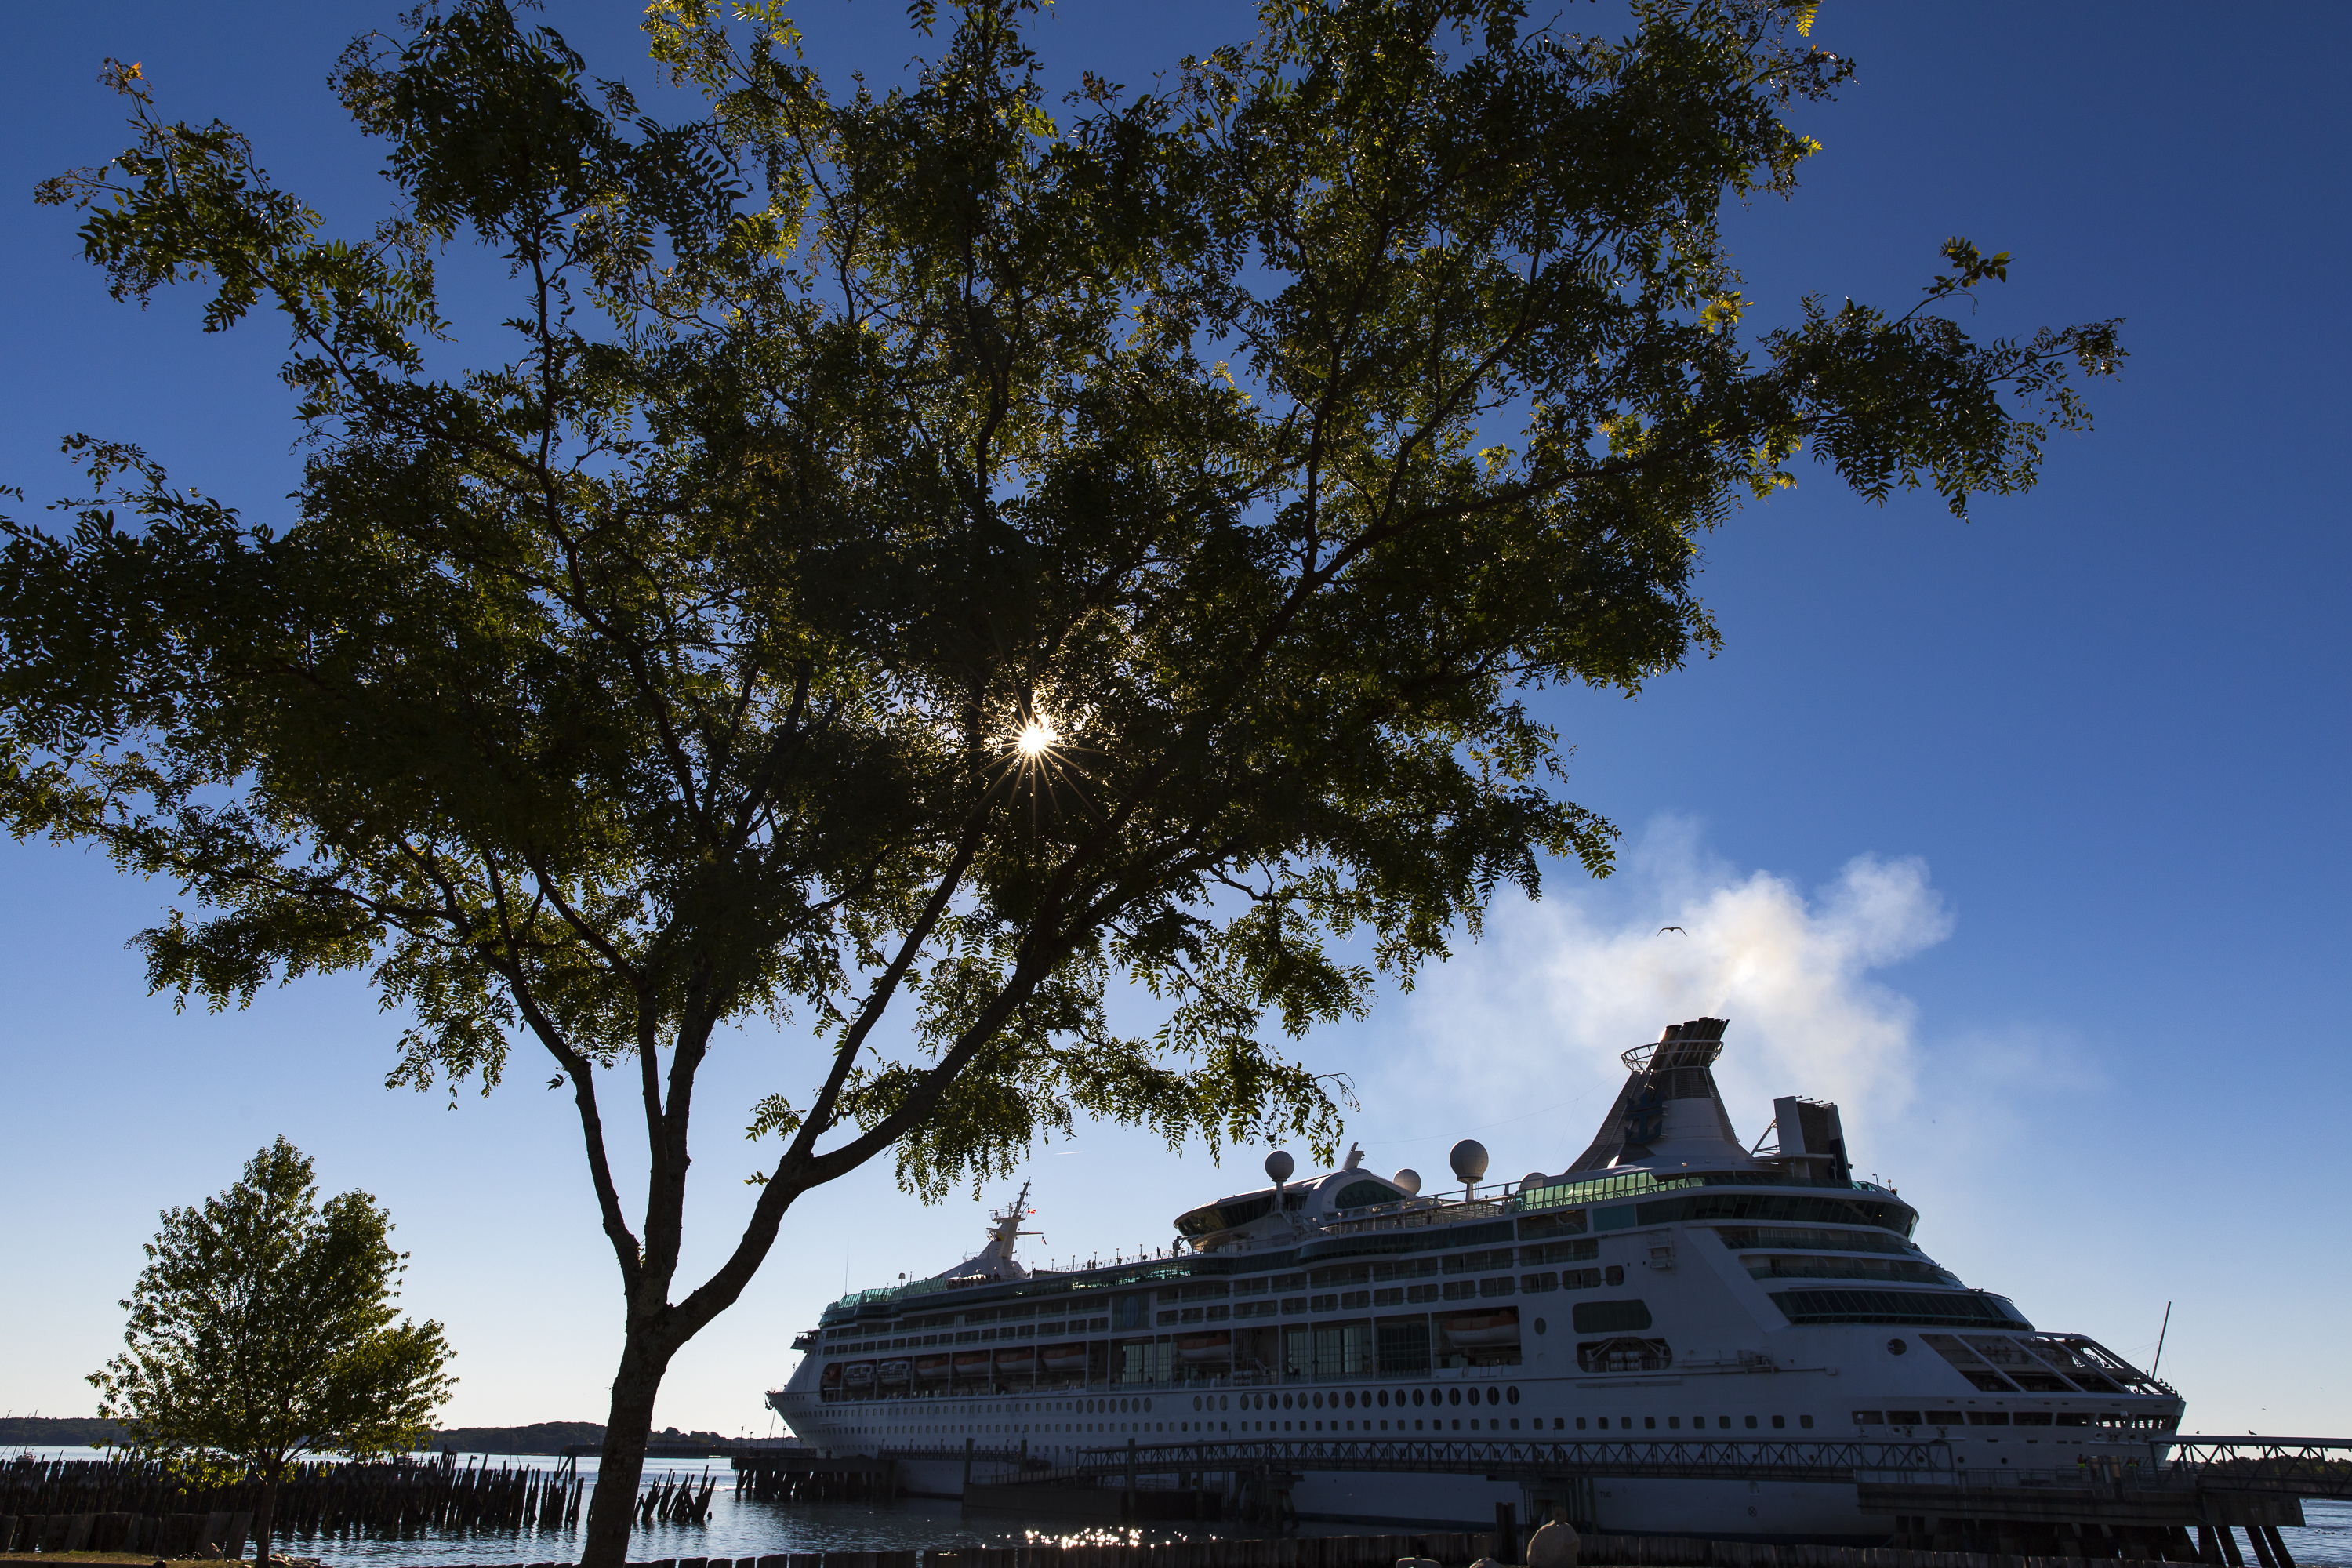 Smoke billows from the smoke stack as the cruise ship Grandeur of the Seas docks at Ocean Gateway. Ben McCanna/Staff Photographer